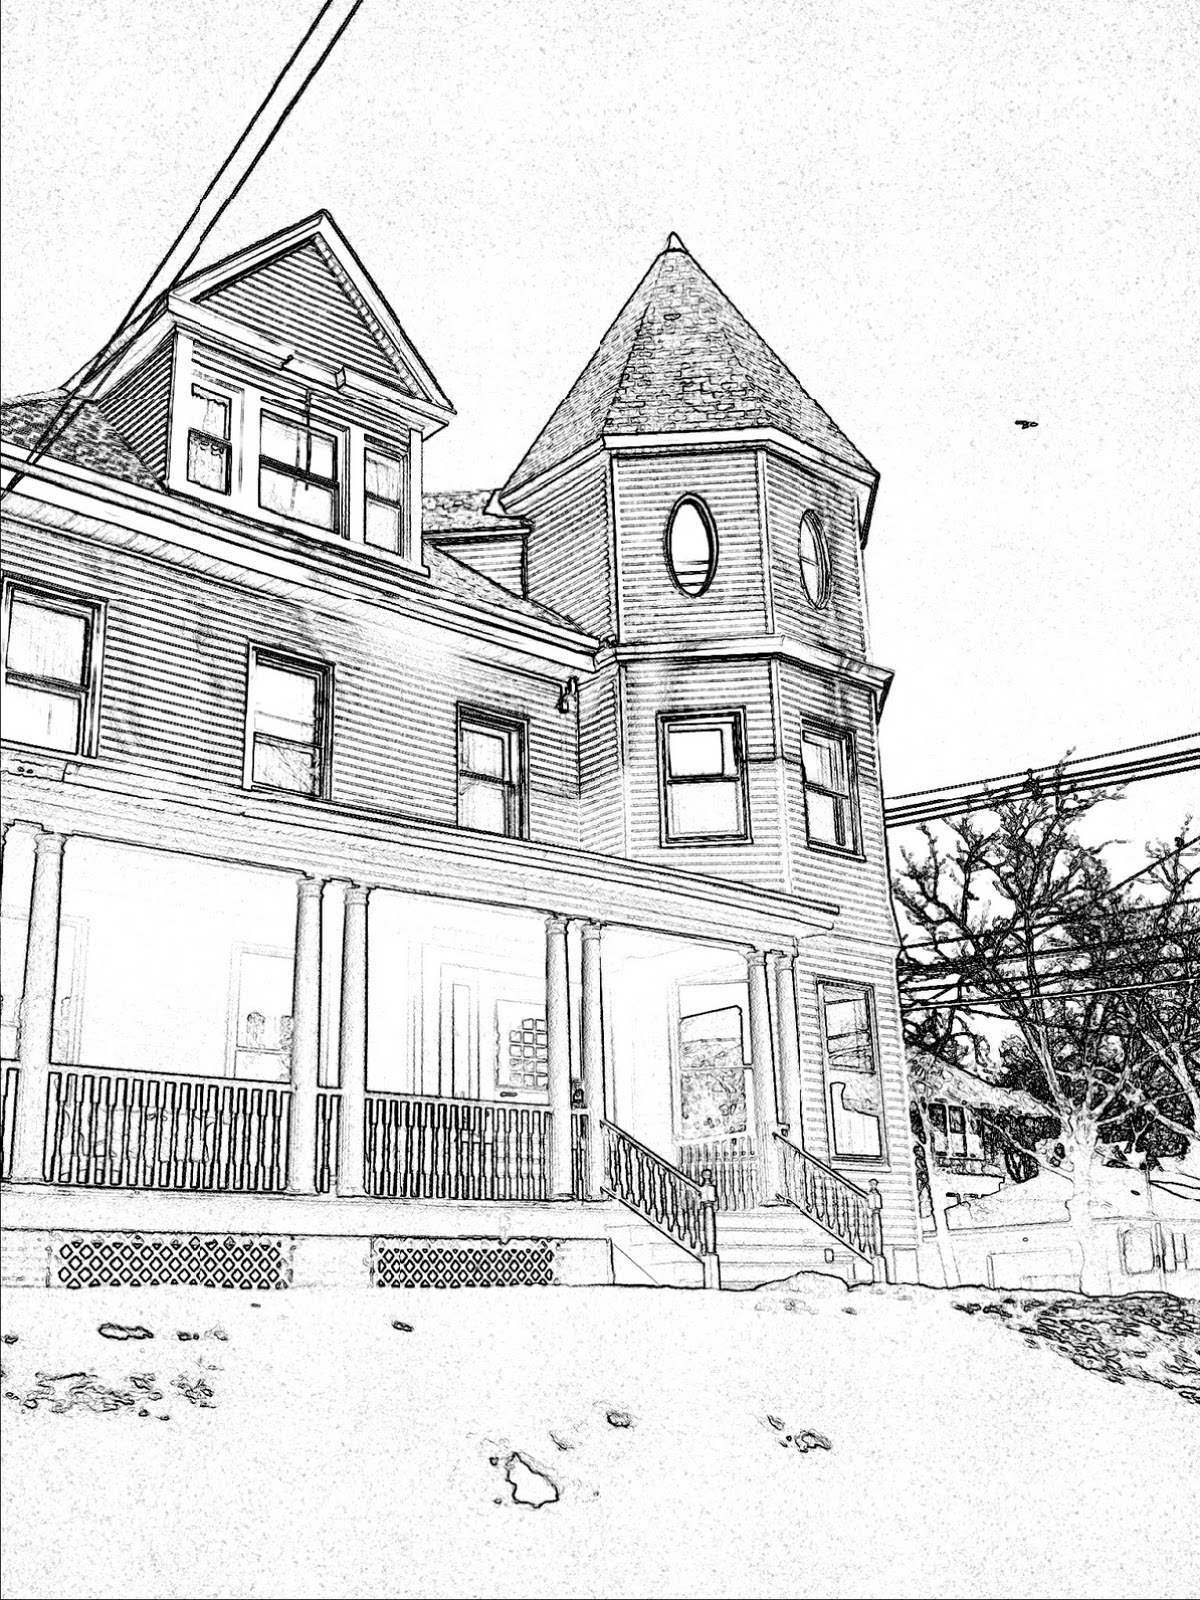 How To Draw A Dream House : dream, house, Beautiful, Dream, House, Drawing, Ideas